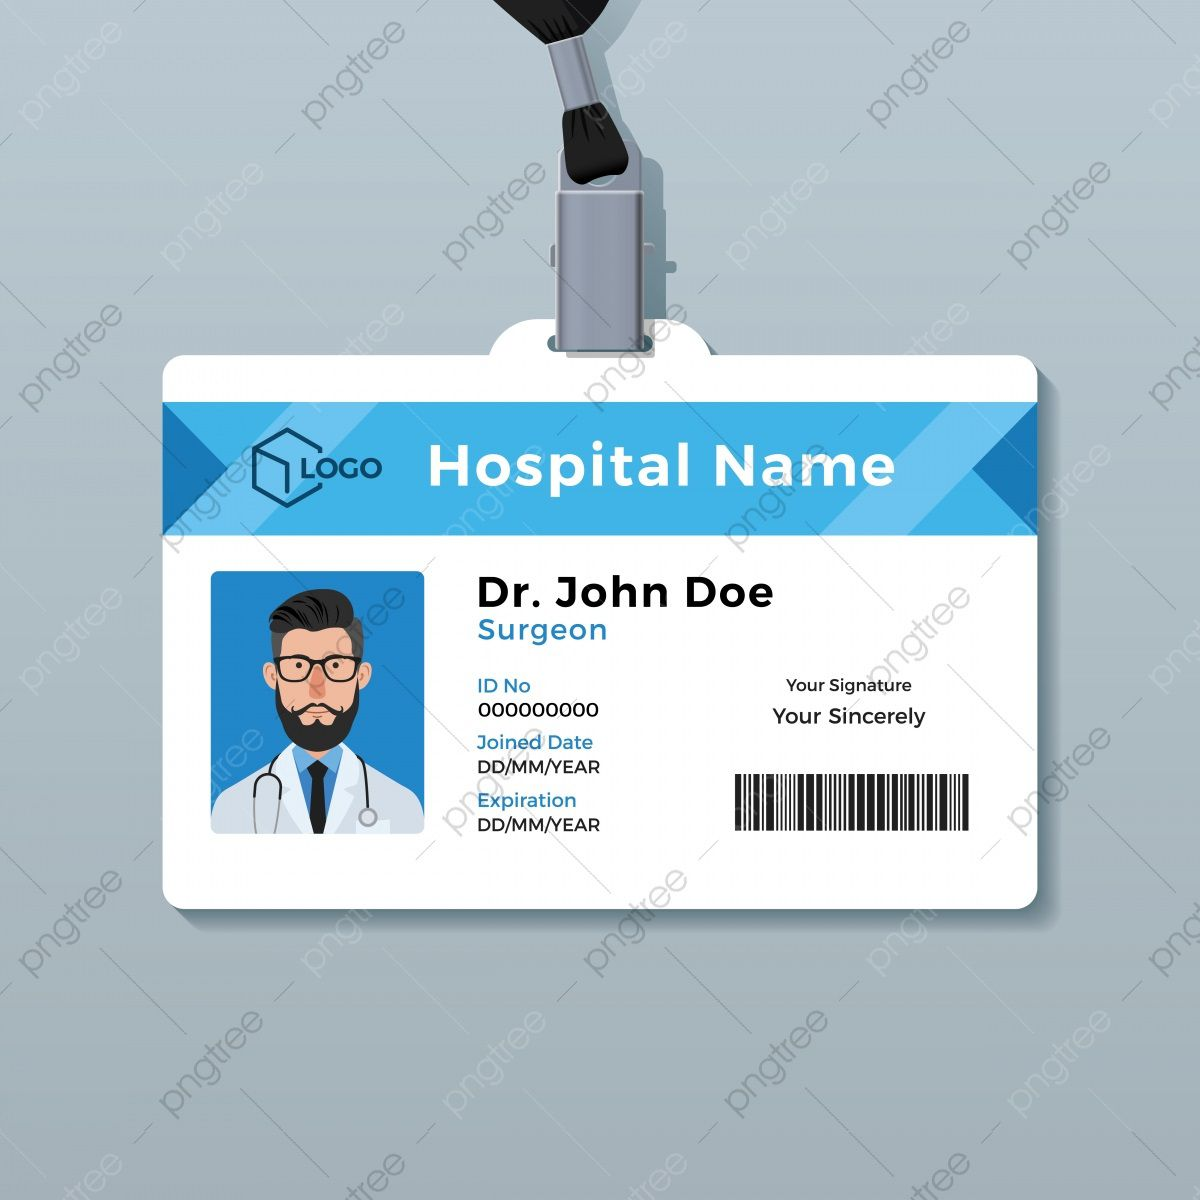 008 Exceptional Id Badge Template Free High Definition  School Teacher Jurassic ParkFull